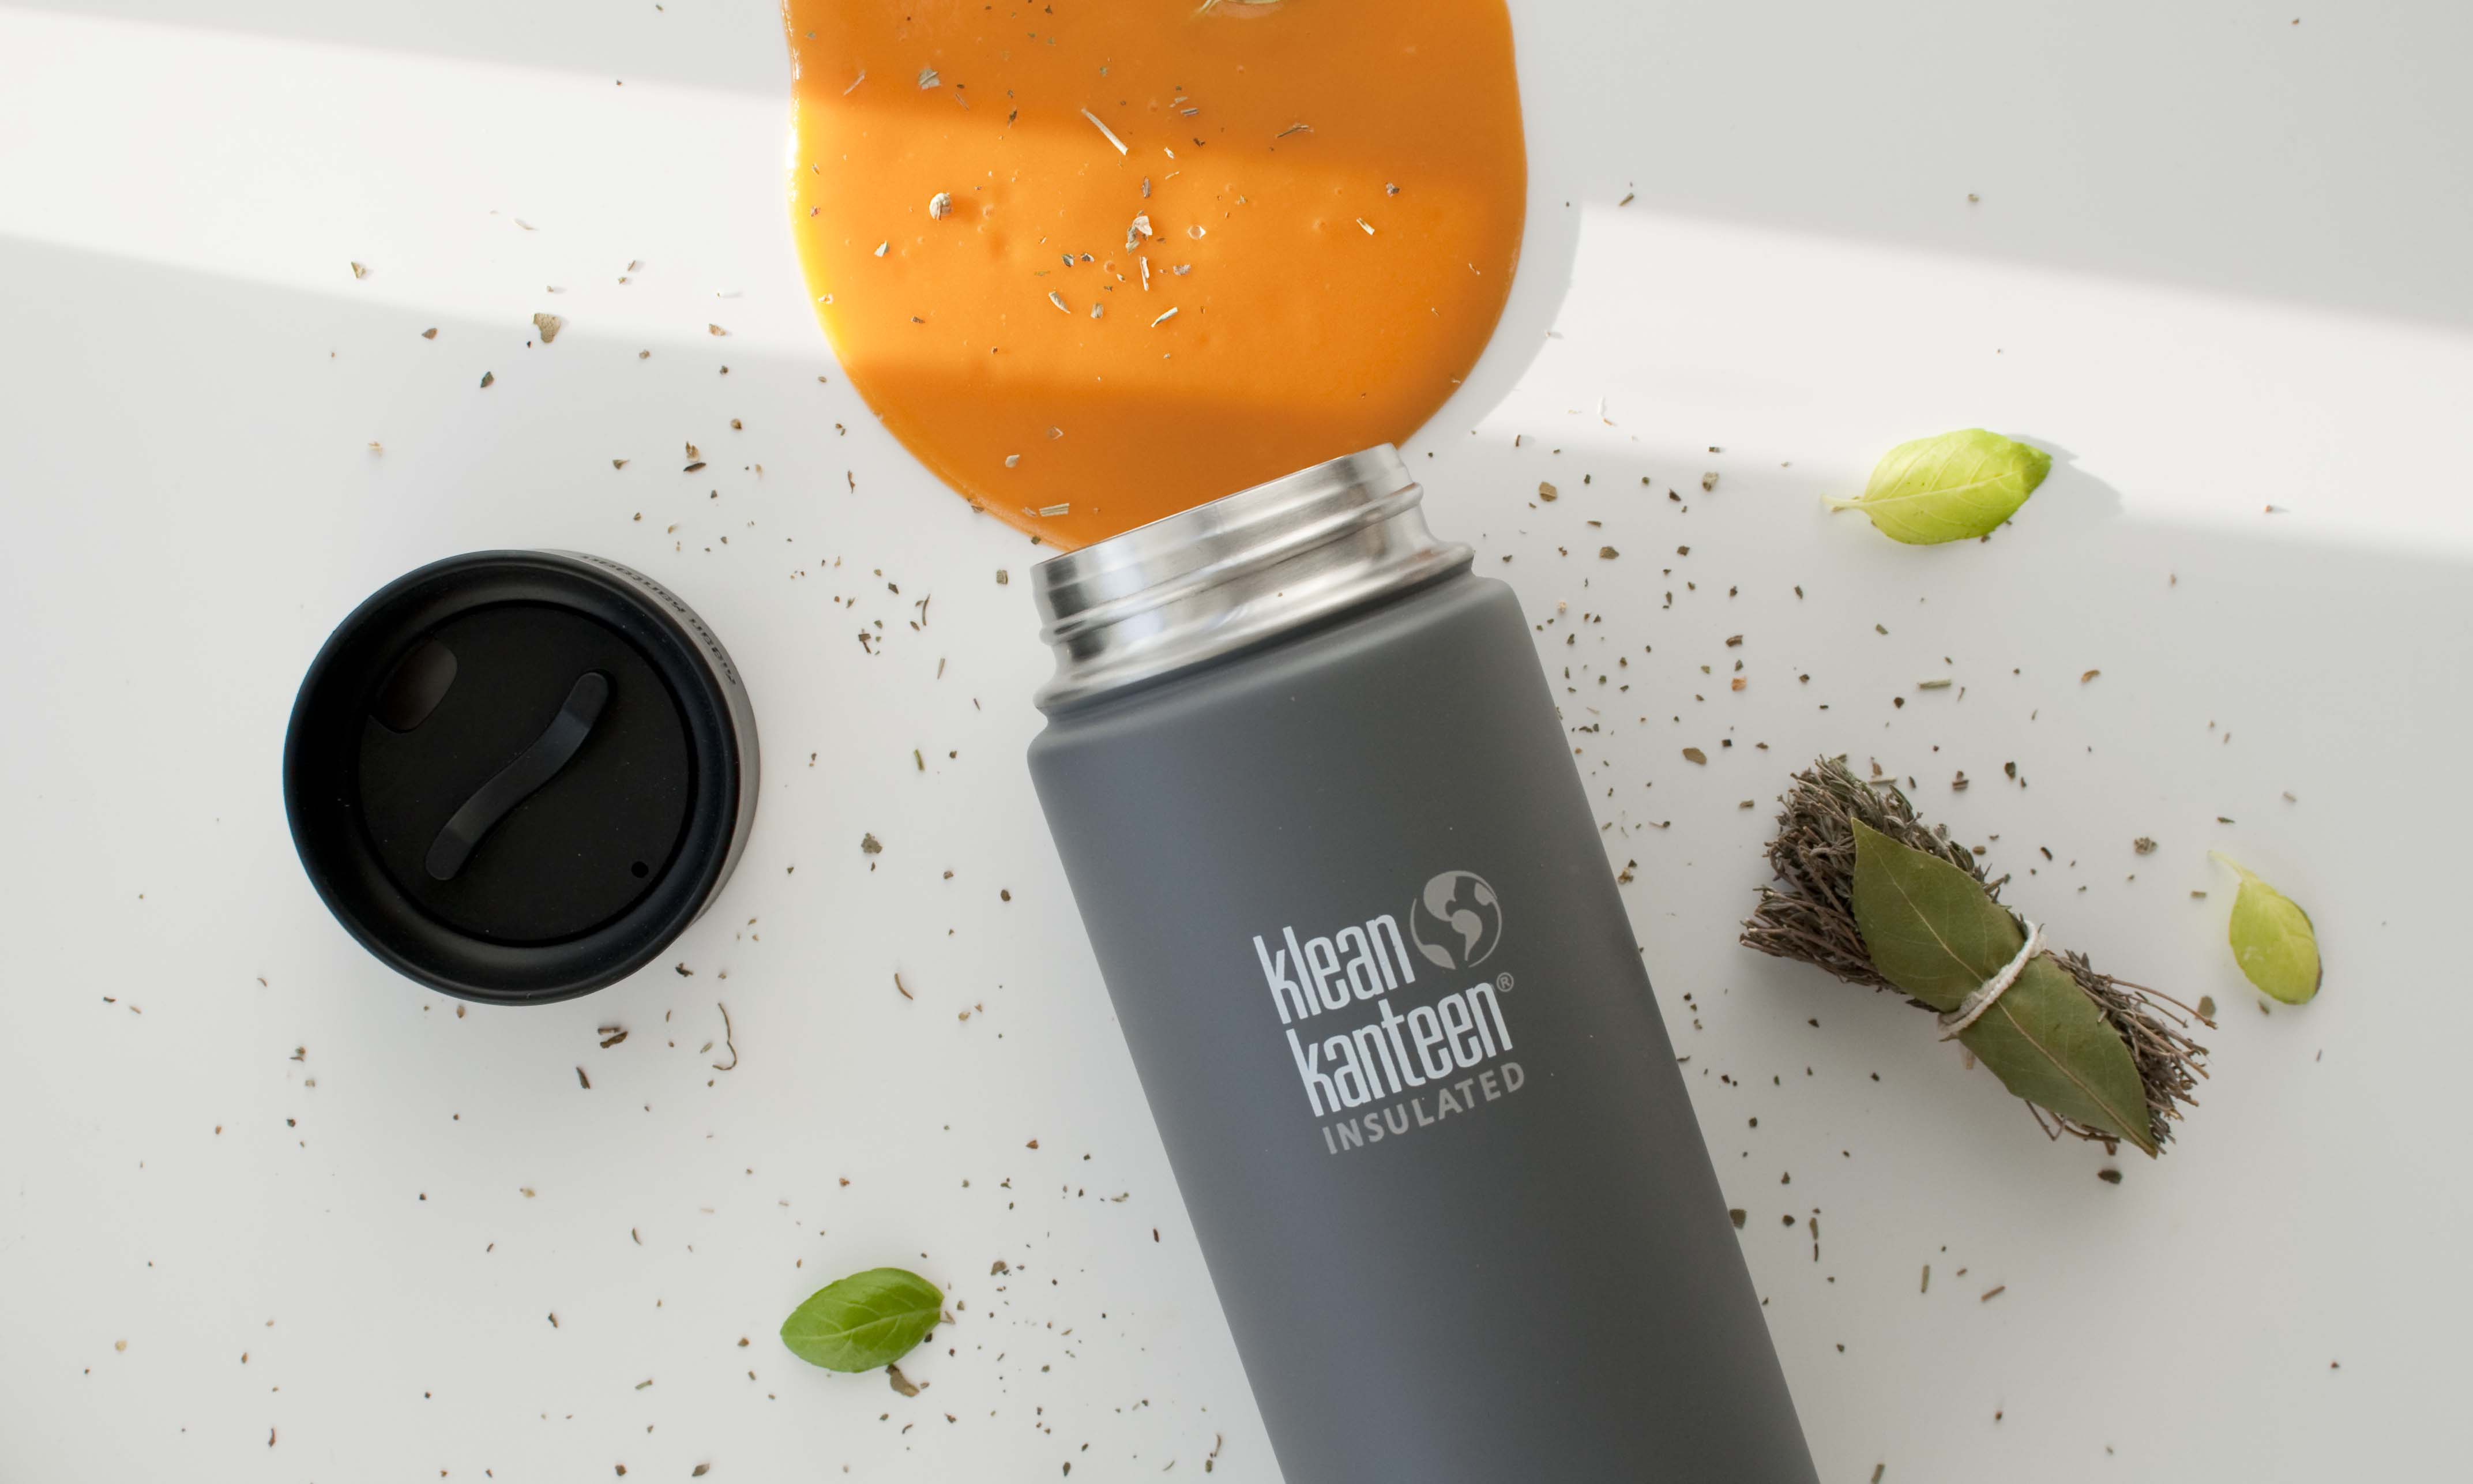 review klean kanteen insulated thermos